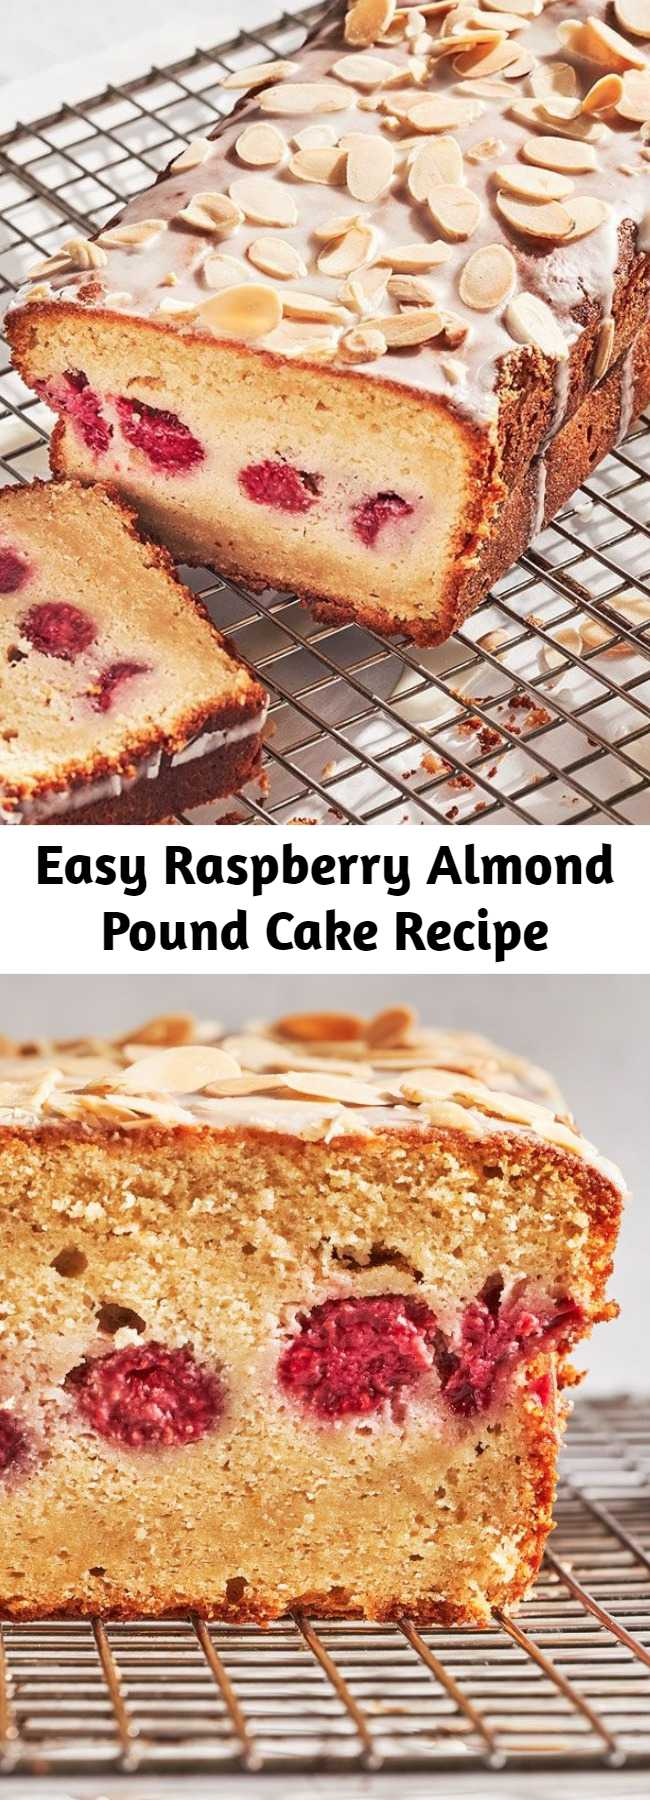 Easy Raspberry Almond Pound Cake Recipe - Raspberry Almond Pound Cake is an easy quick bread with a beautiful glaze and topped with toasted almonds.